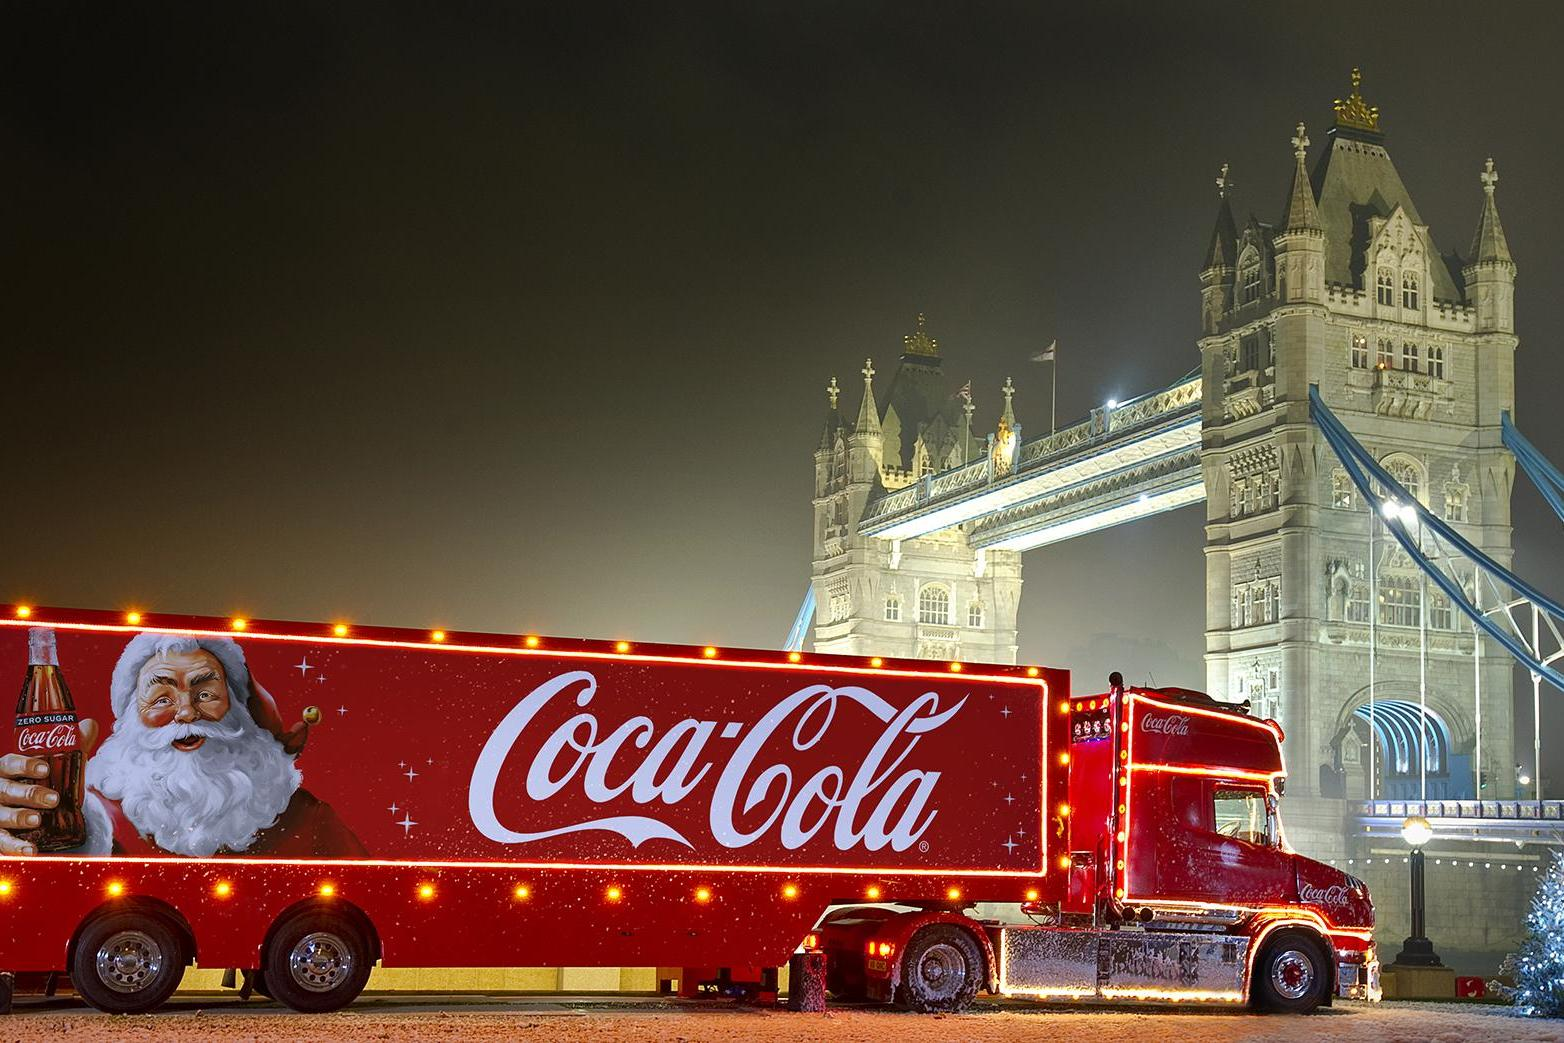 Coca-Cola Christmas truck tour dates and locations revealed